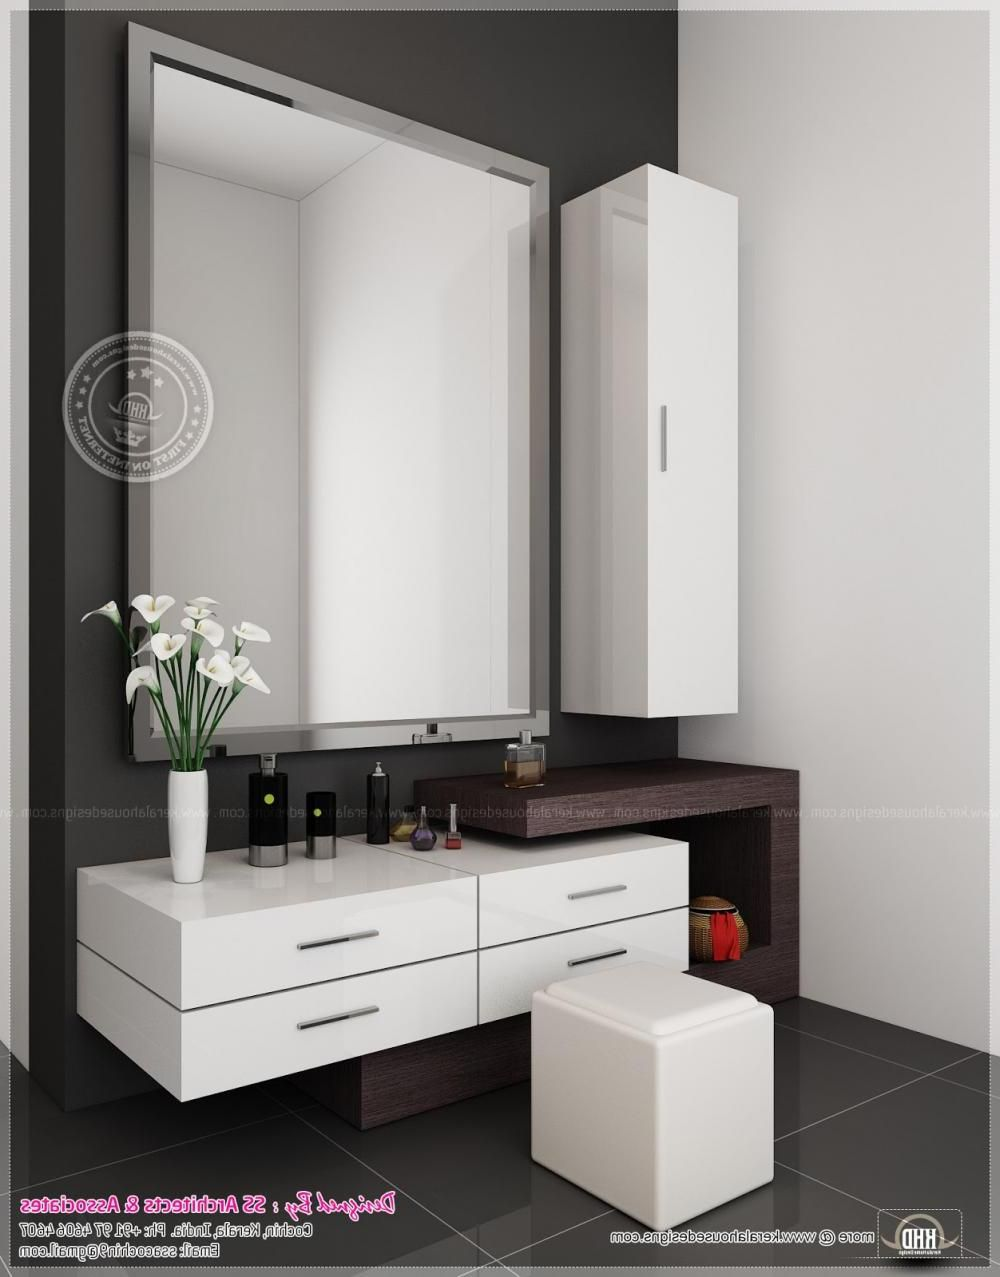 Dressing table designs - Master Bedroom Modern Vanity Table Built In Bedroom Design Dressing